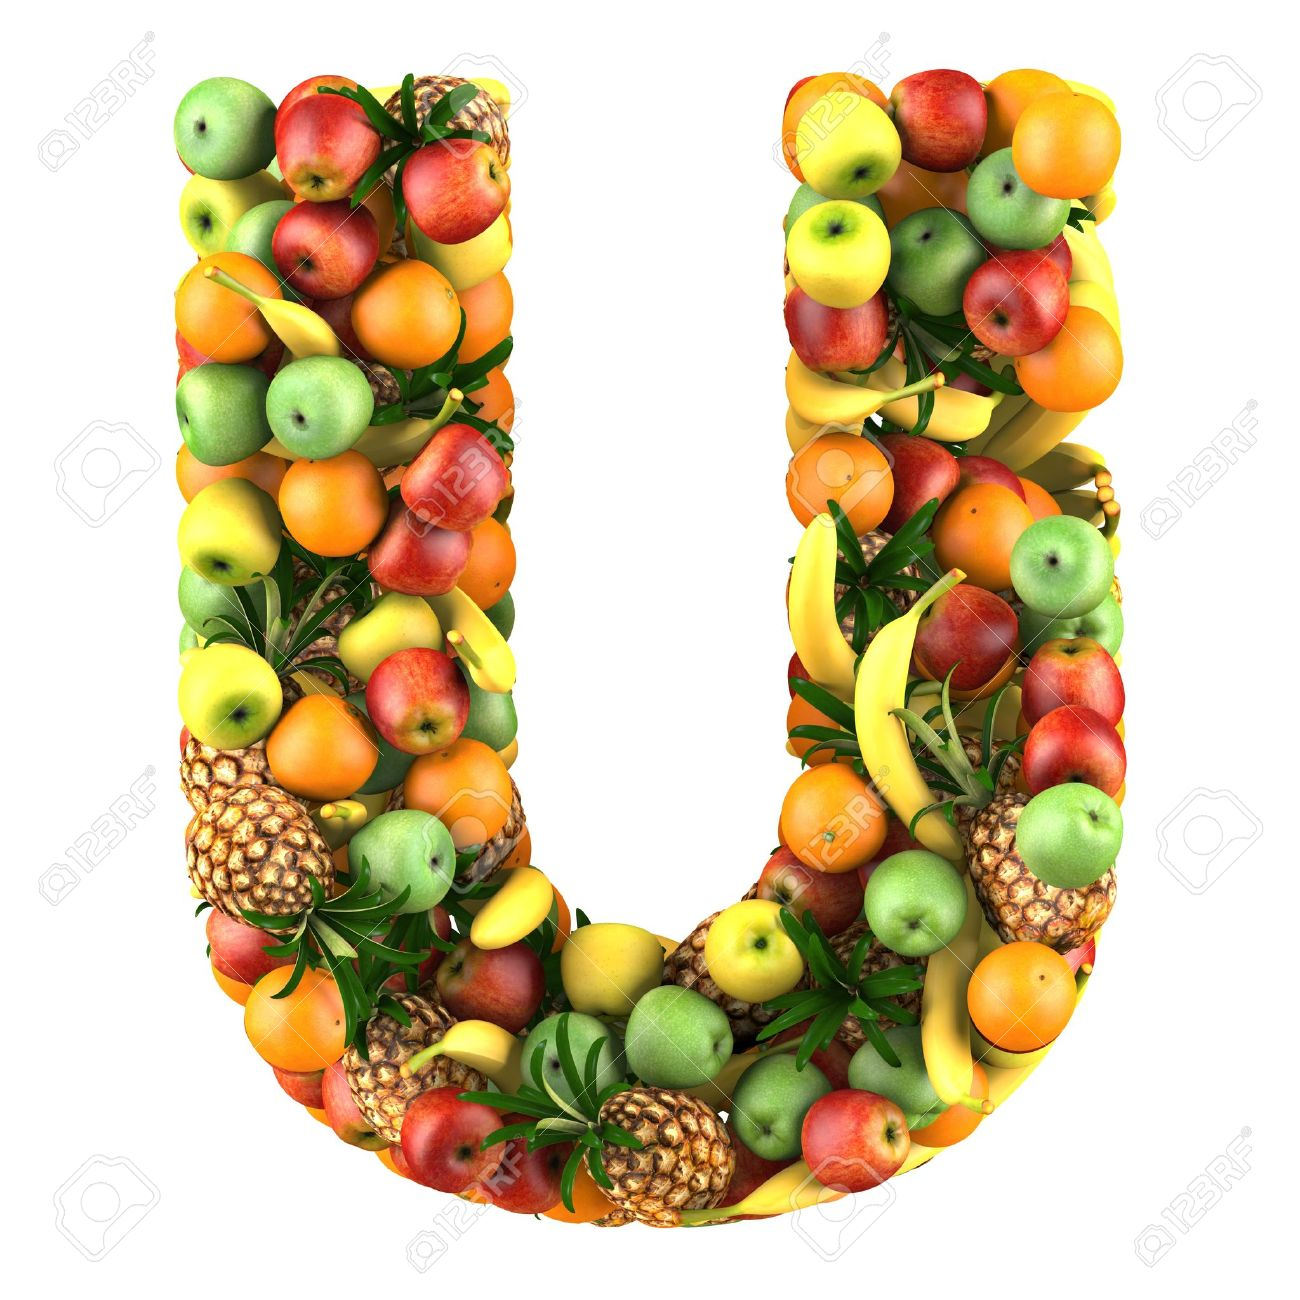 Letter U Made Fruits Isolated A White Stock Picture